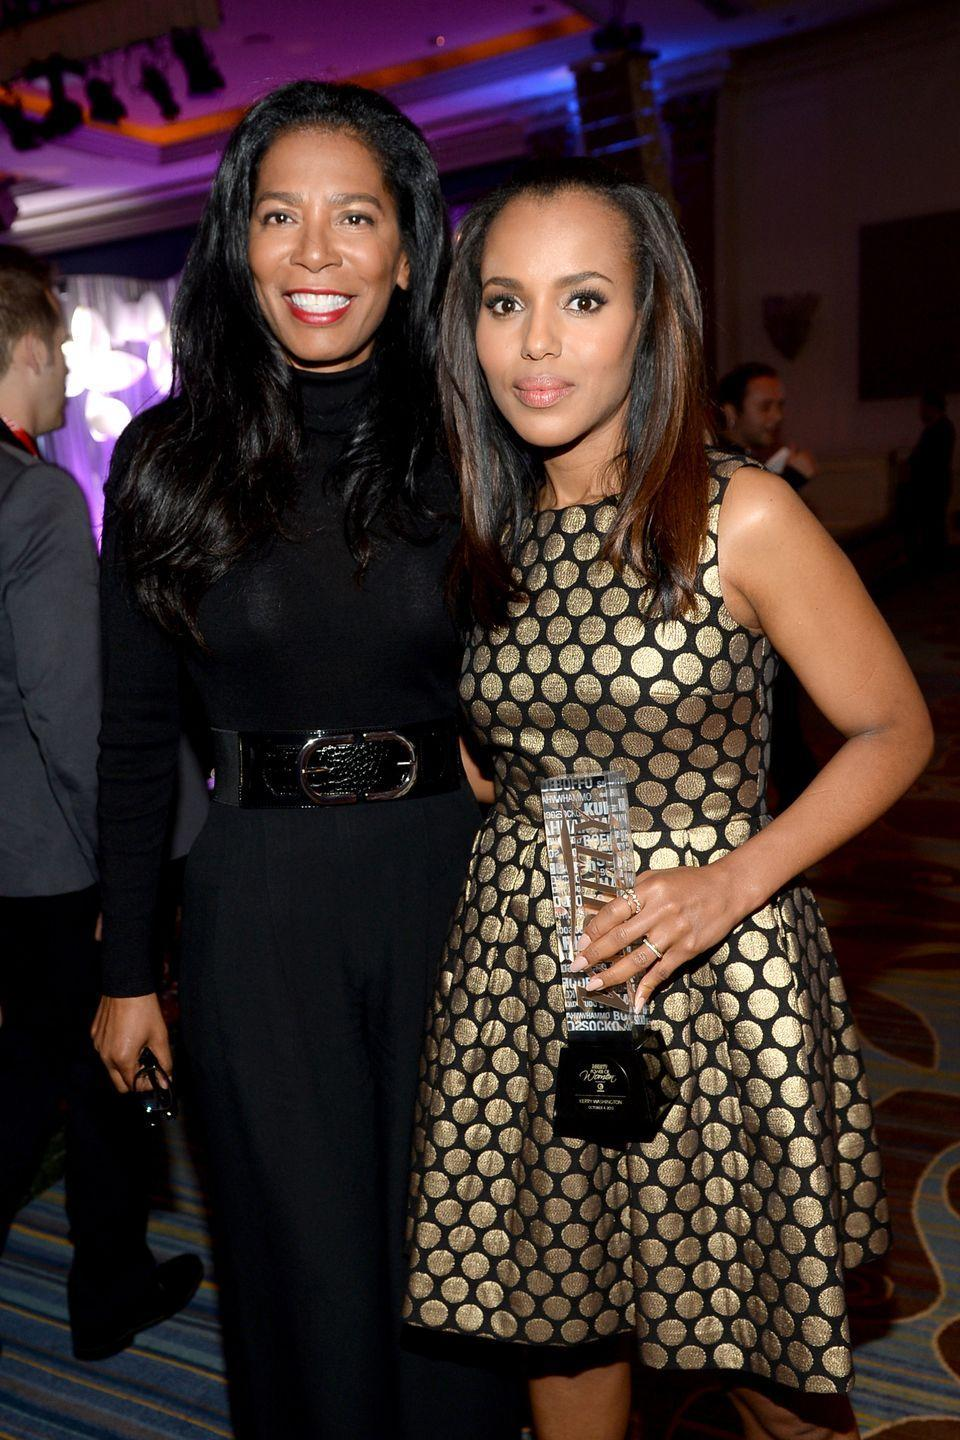 <p>Kerry Washington portrayed Judy Smith on the hit TV show <em>Scandal,</em> who was the real-life inspiration for Washington's character Olivia Pope. </p>